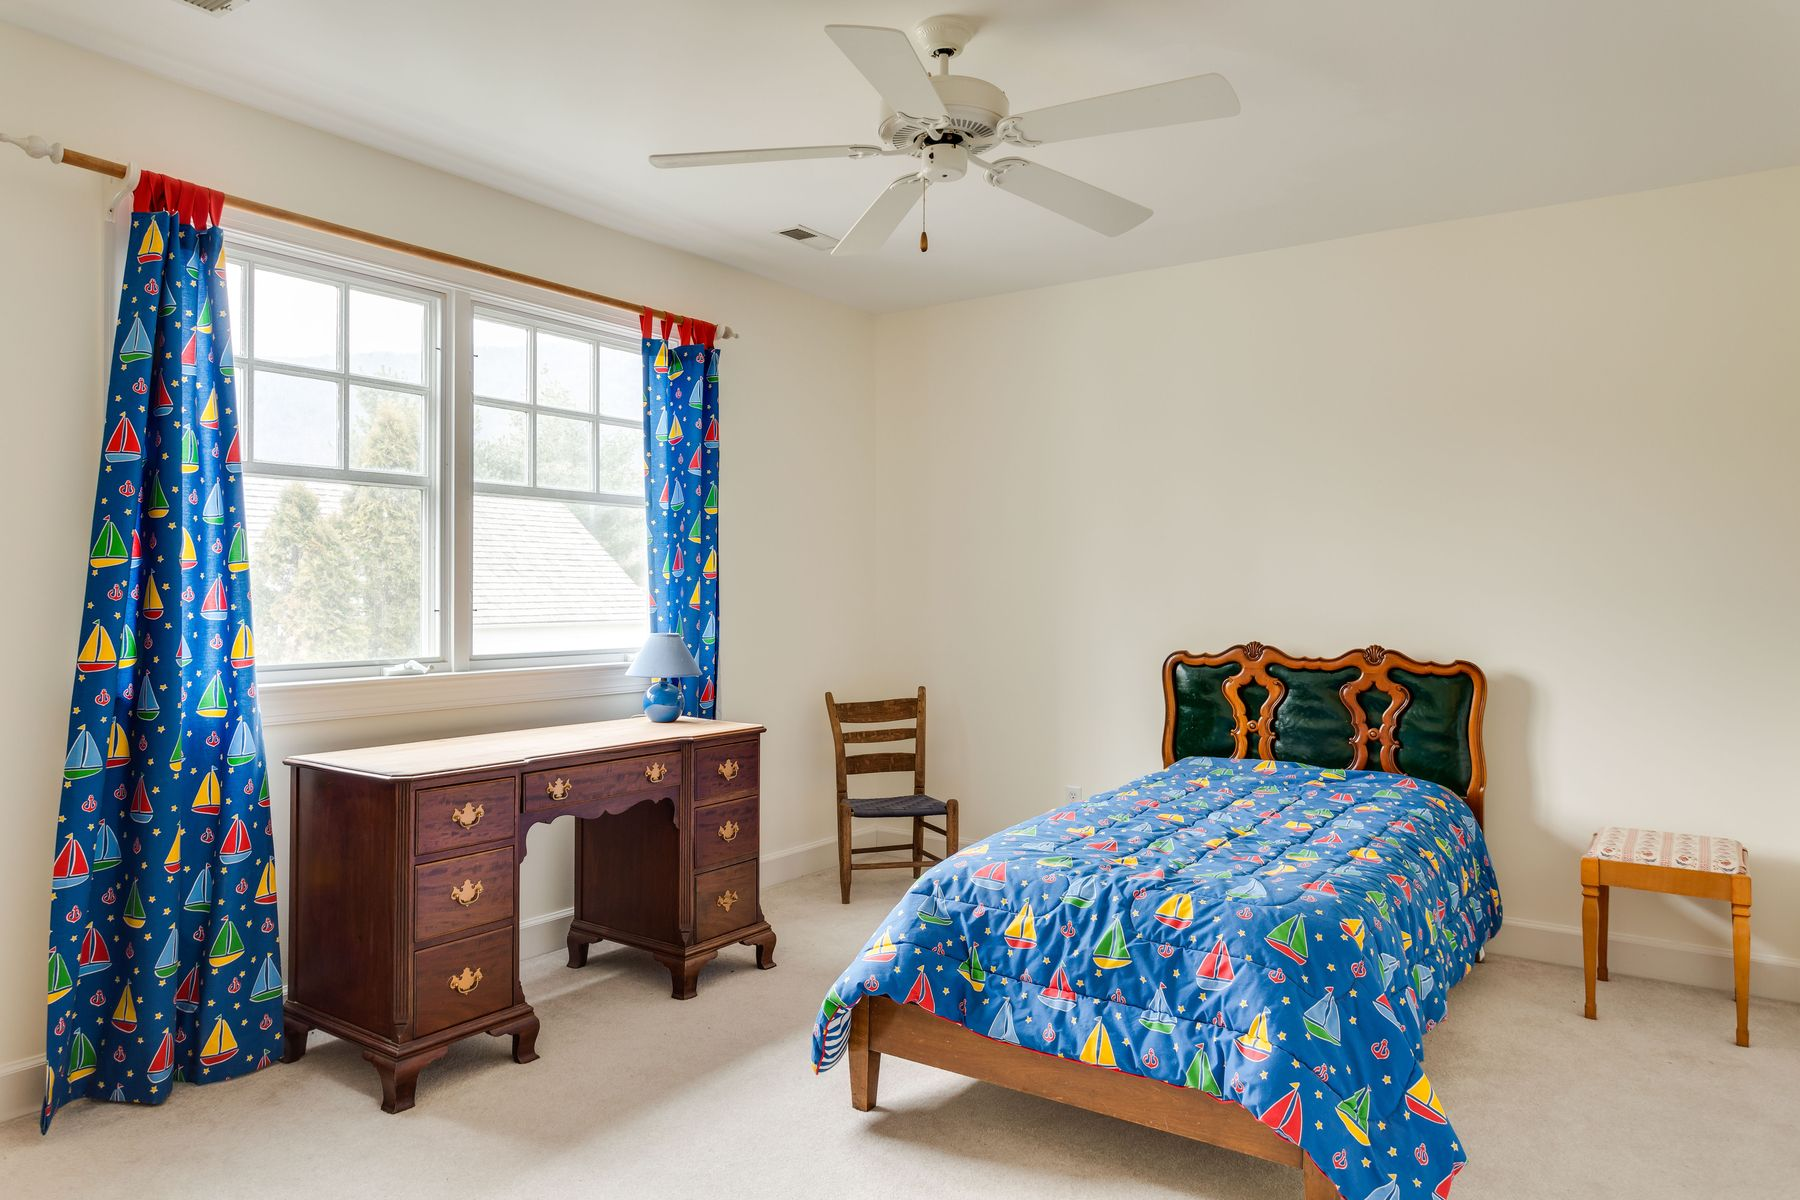 Additional photo for property listing at 4370 Slam Gate Road  Crozet, Virginia 22932 United States